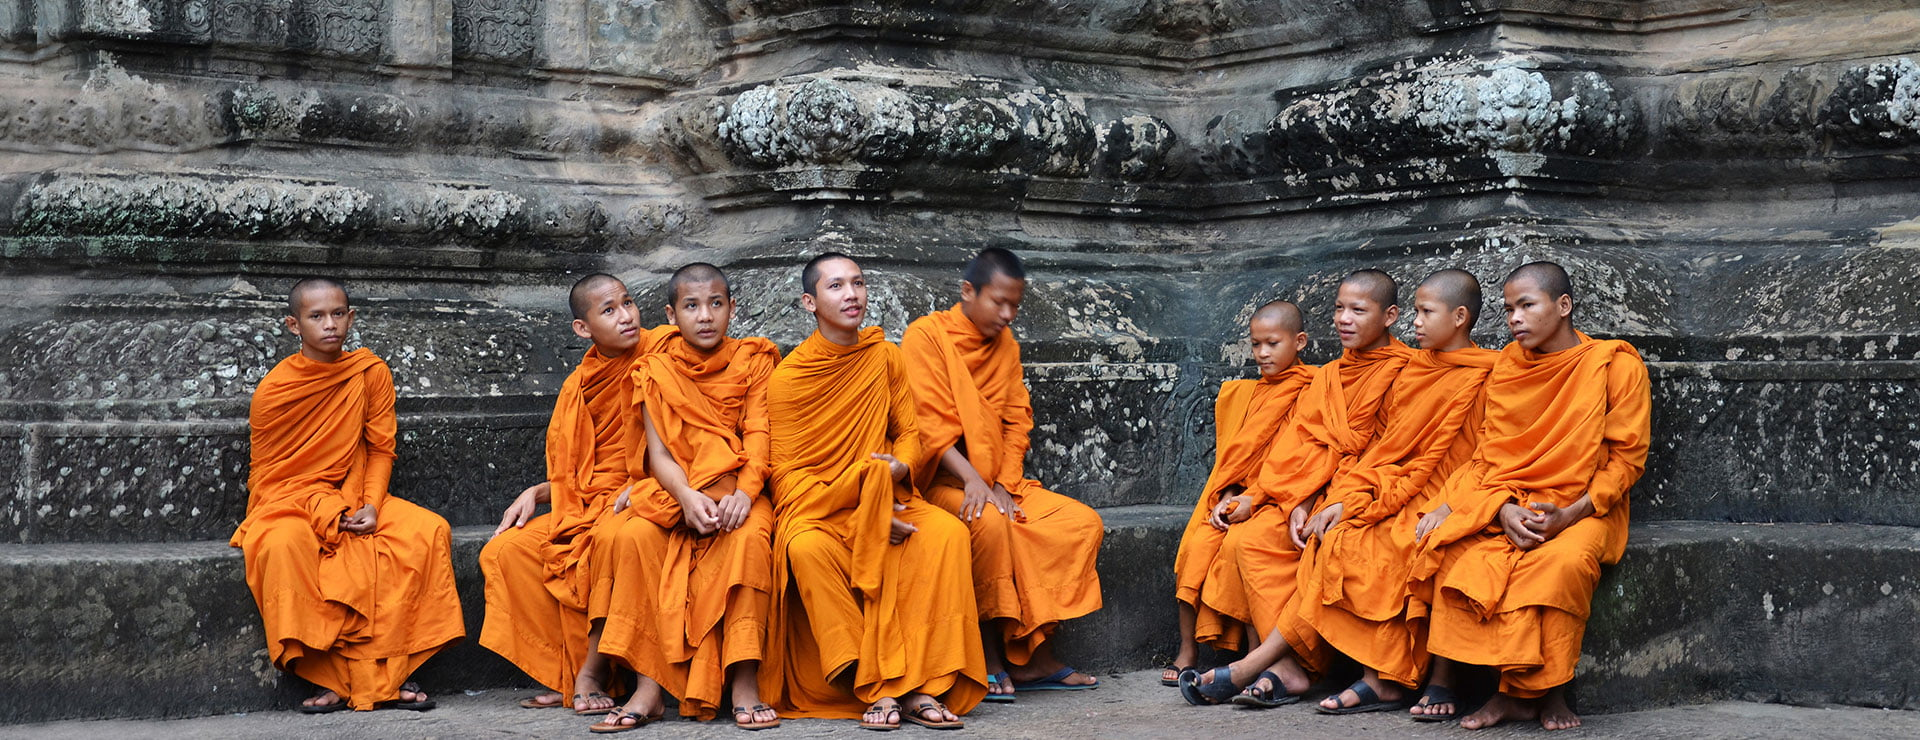 The journey of finding the destinations in Cambodia which fit your travel personality